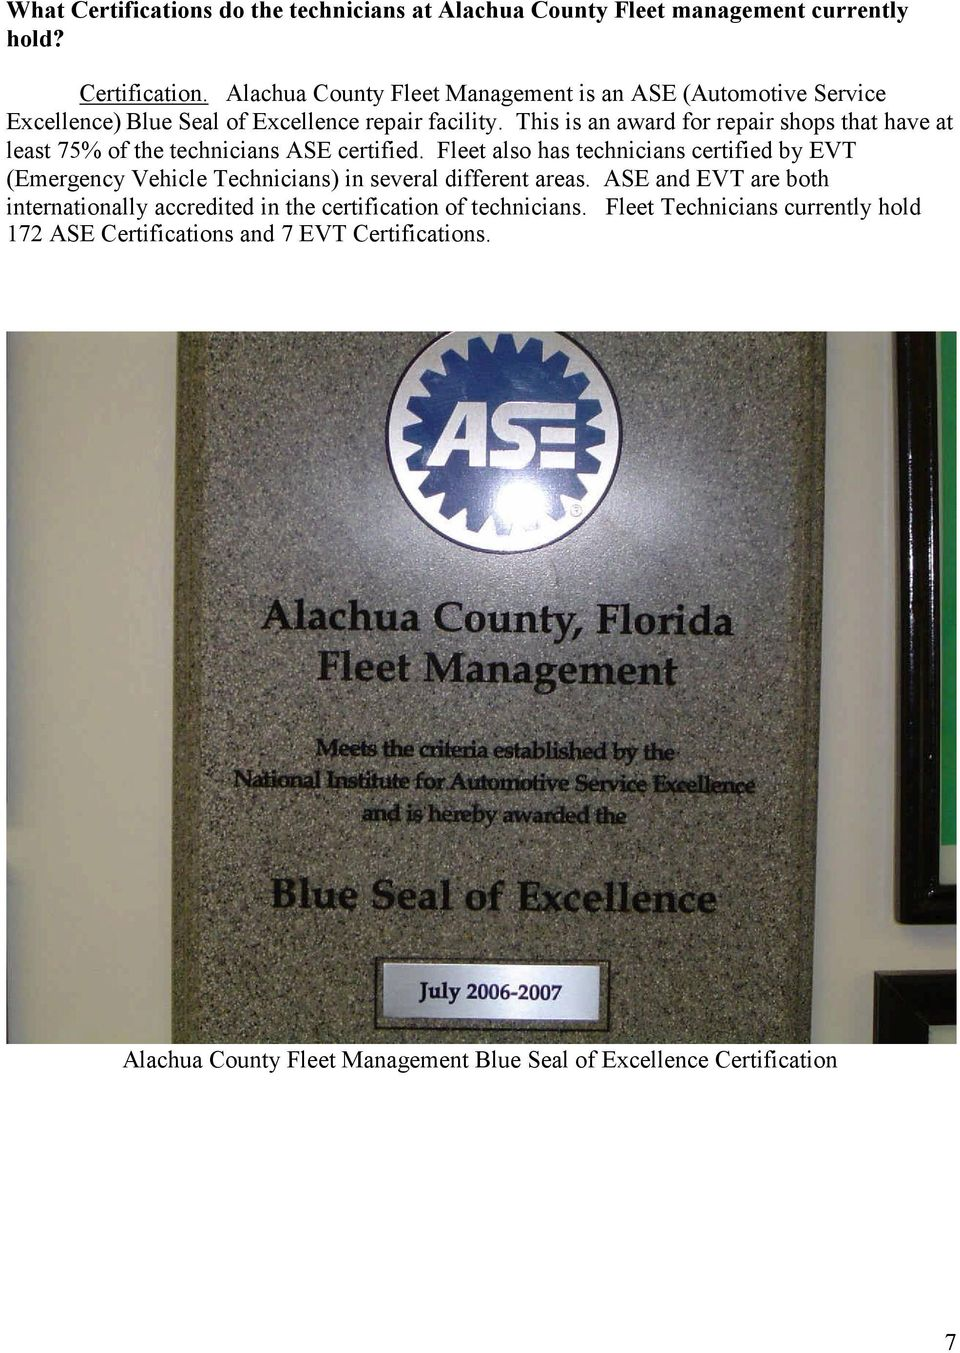 Fleet also has technicians certified by EVT (Emergency Vehicle Technicians) in several different areas.